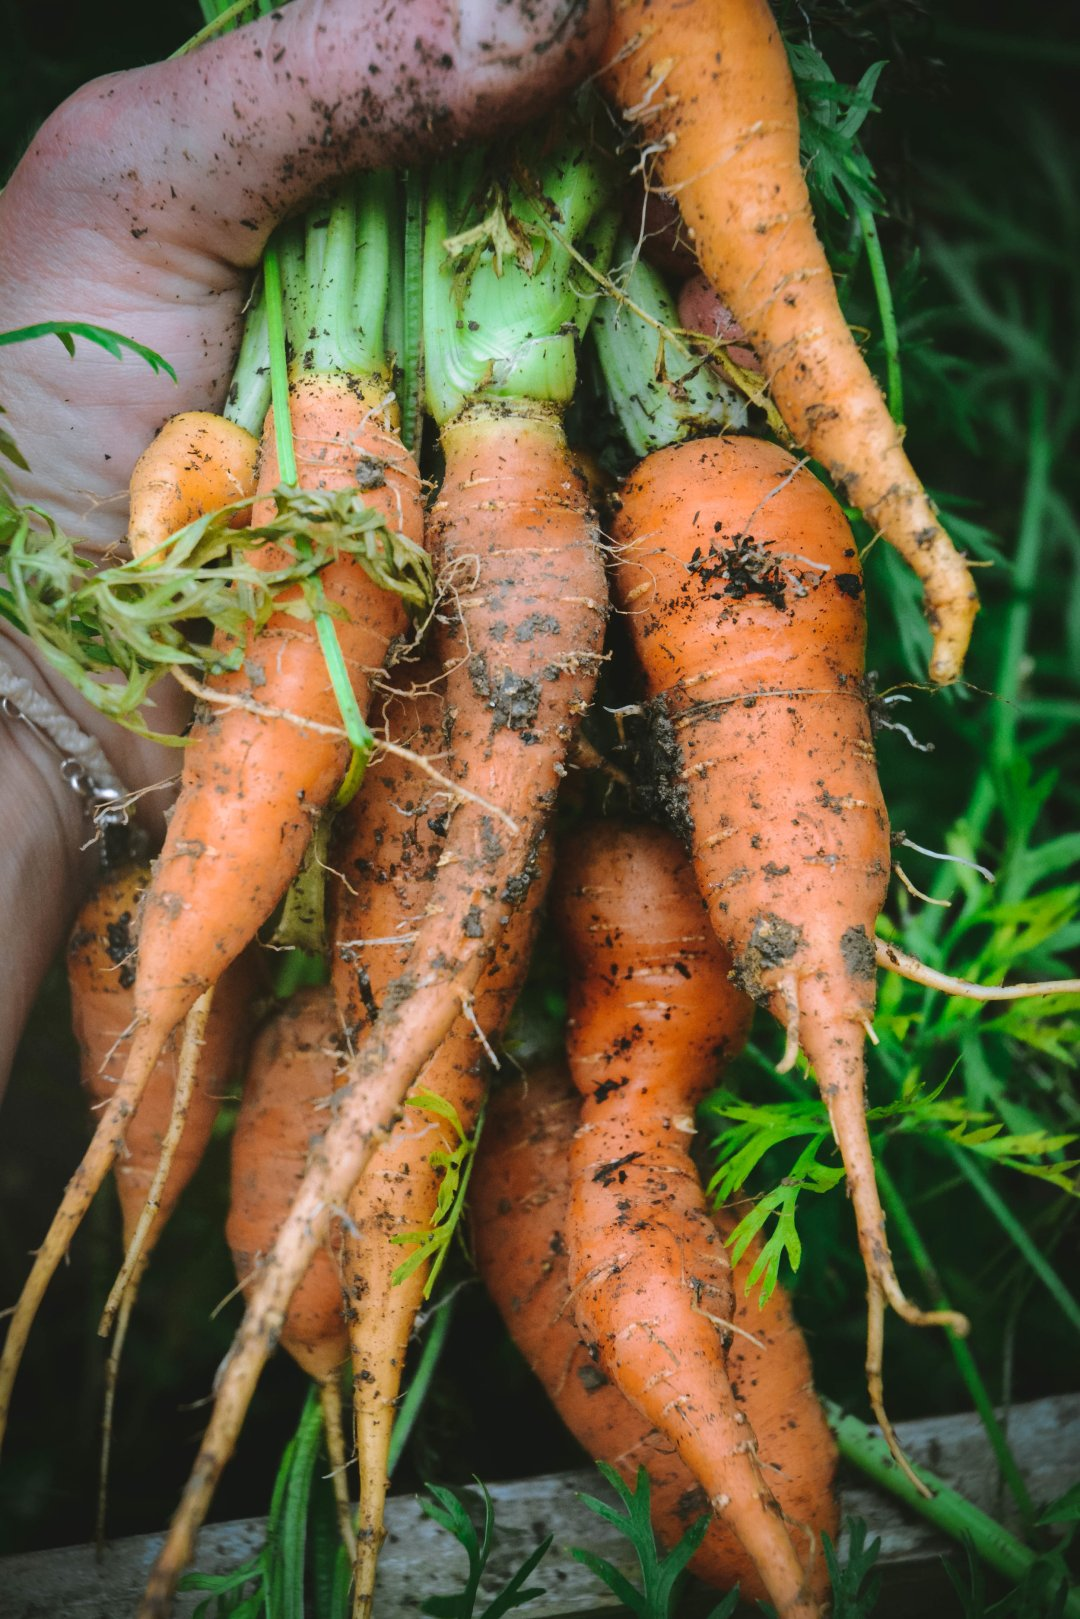 Carrots from ground with dirt in hand